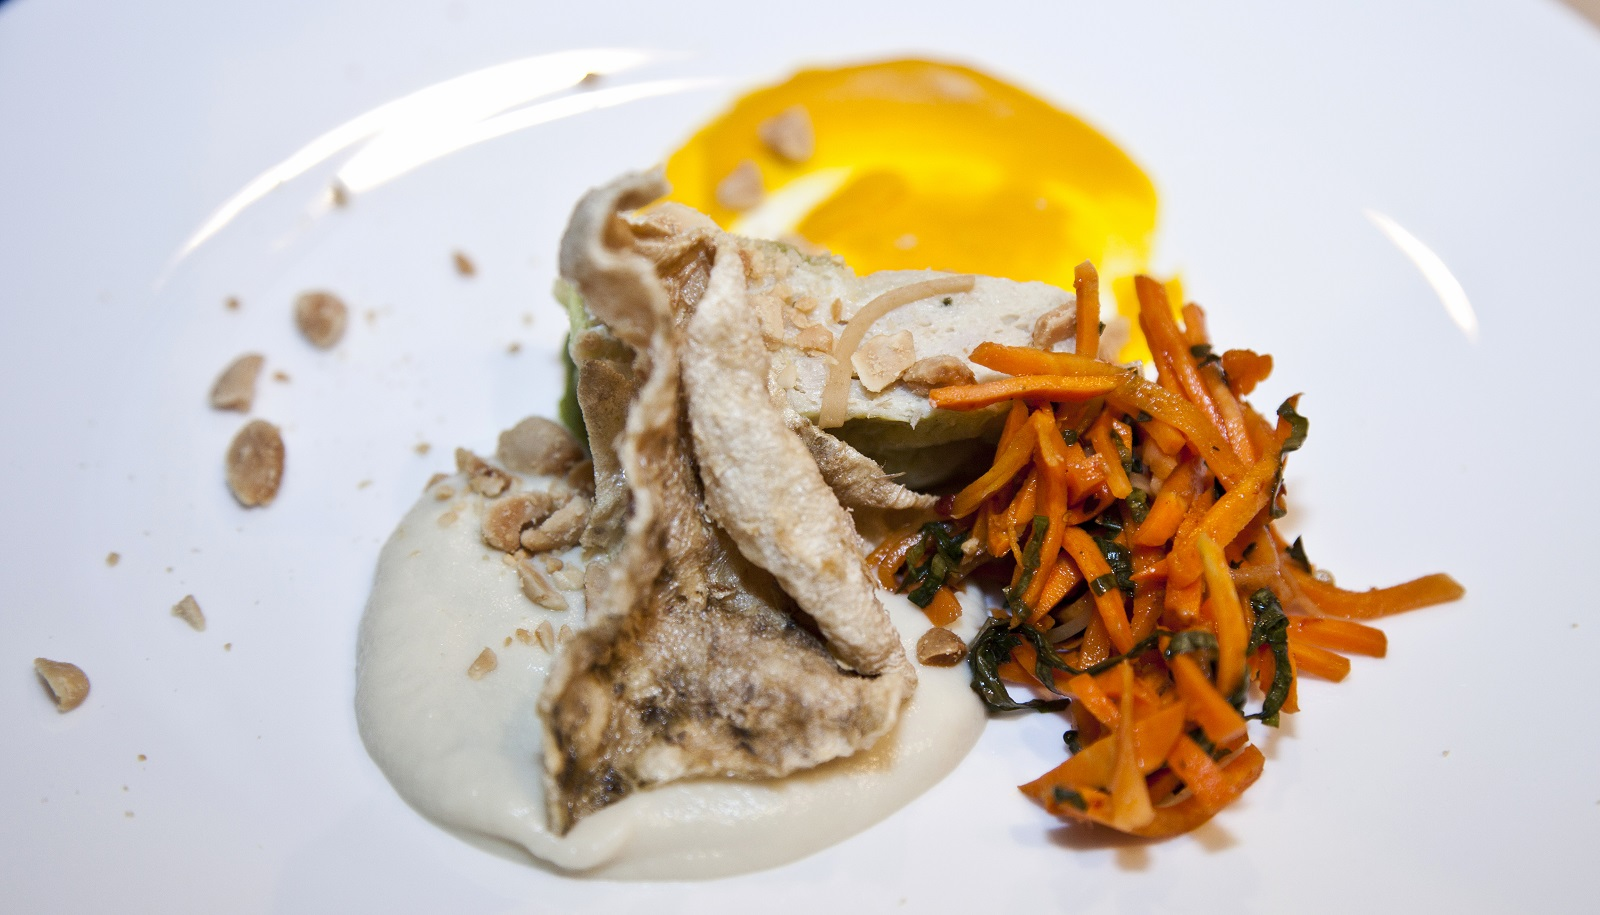 Striped bass prepared by Chef Steve Gedra of The Black Sheep, served at the James Beard House. (Rina Oh/JBH)